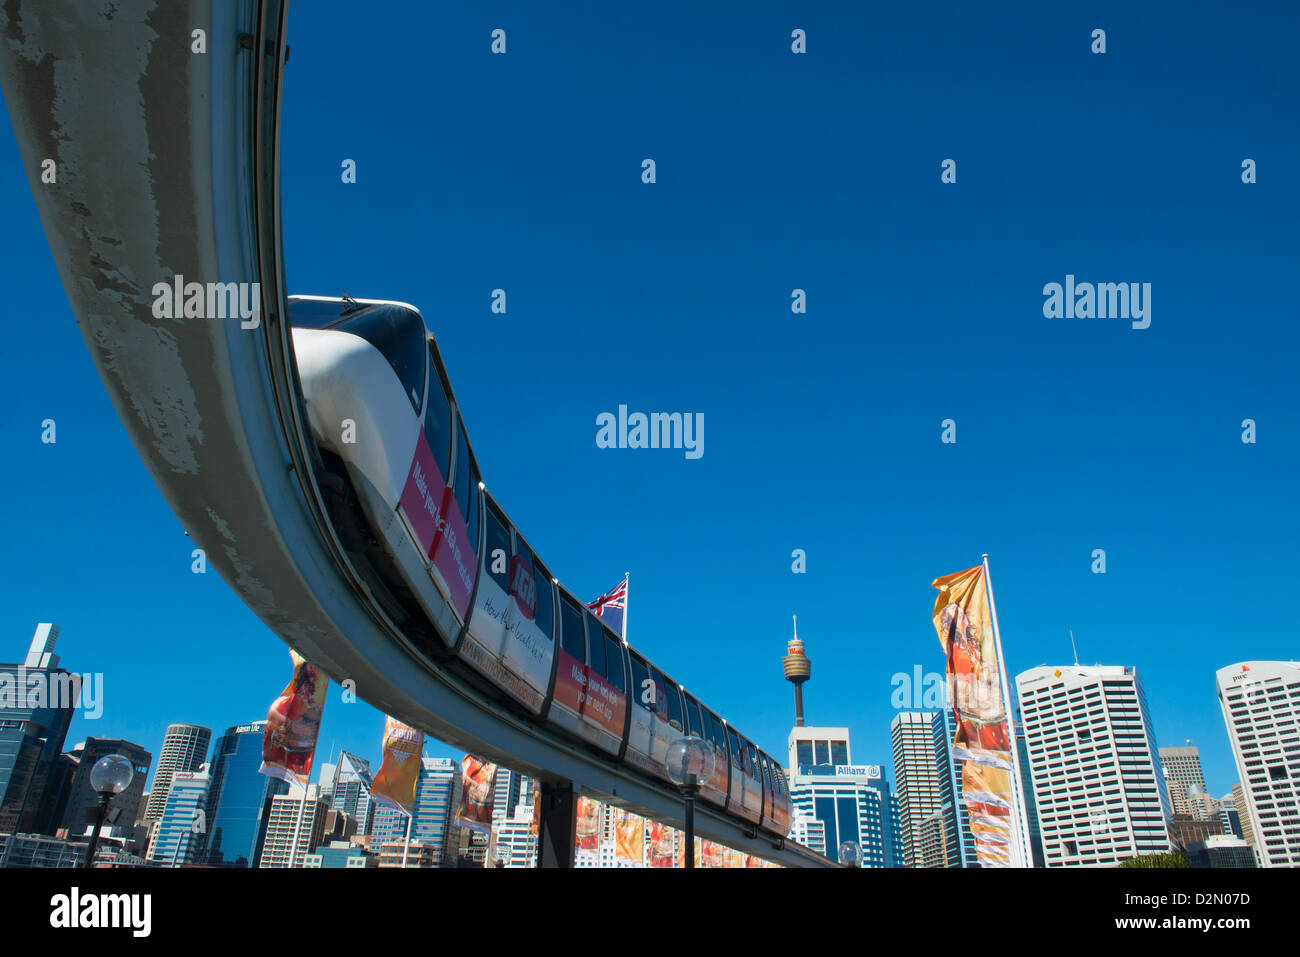 Monorail, Darling Harbour, Sydney, Nouvelle-Galles du Sud, Australie, Pacifique Photo Stock